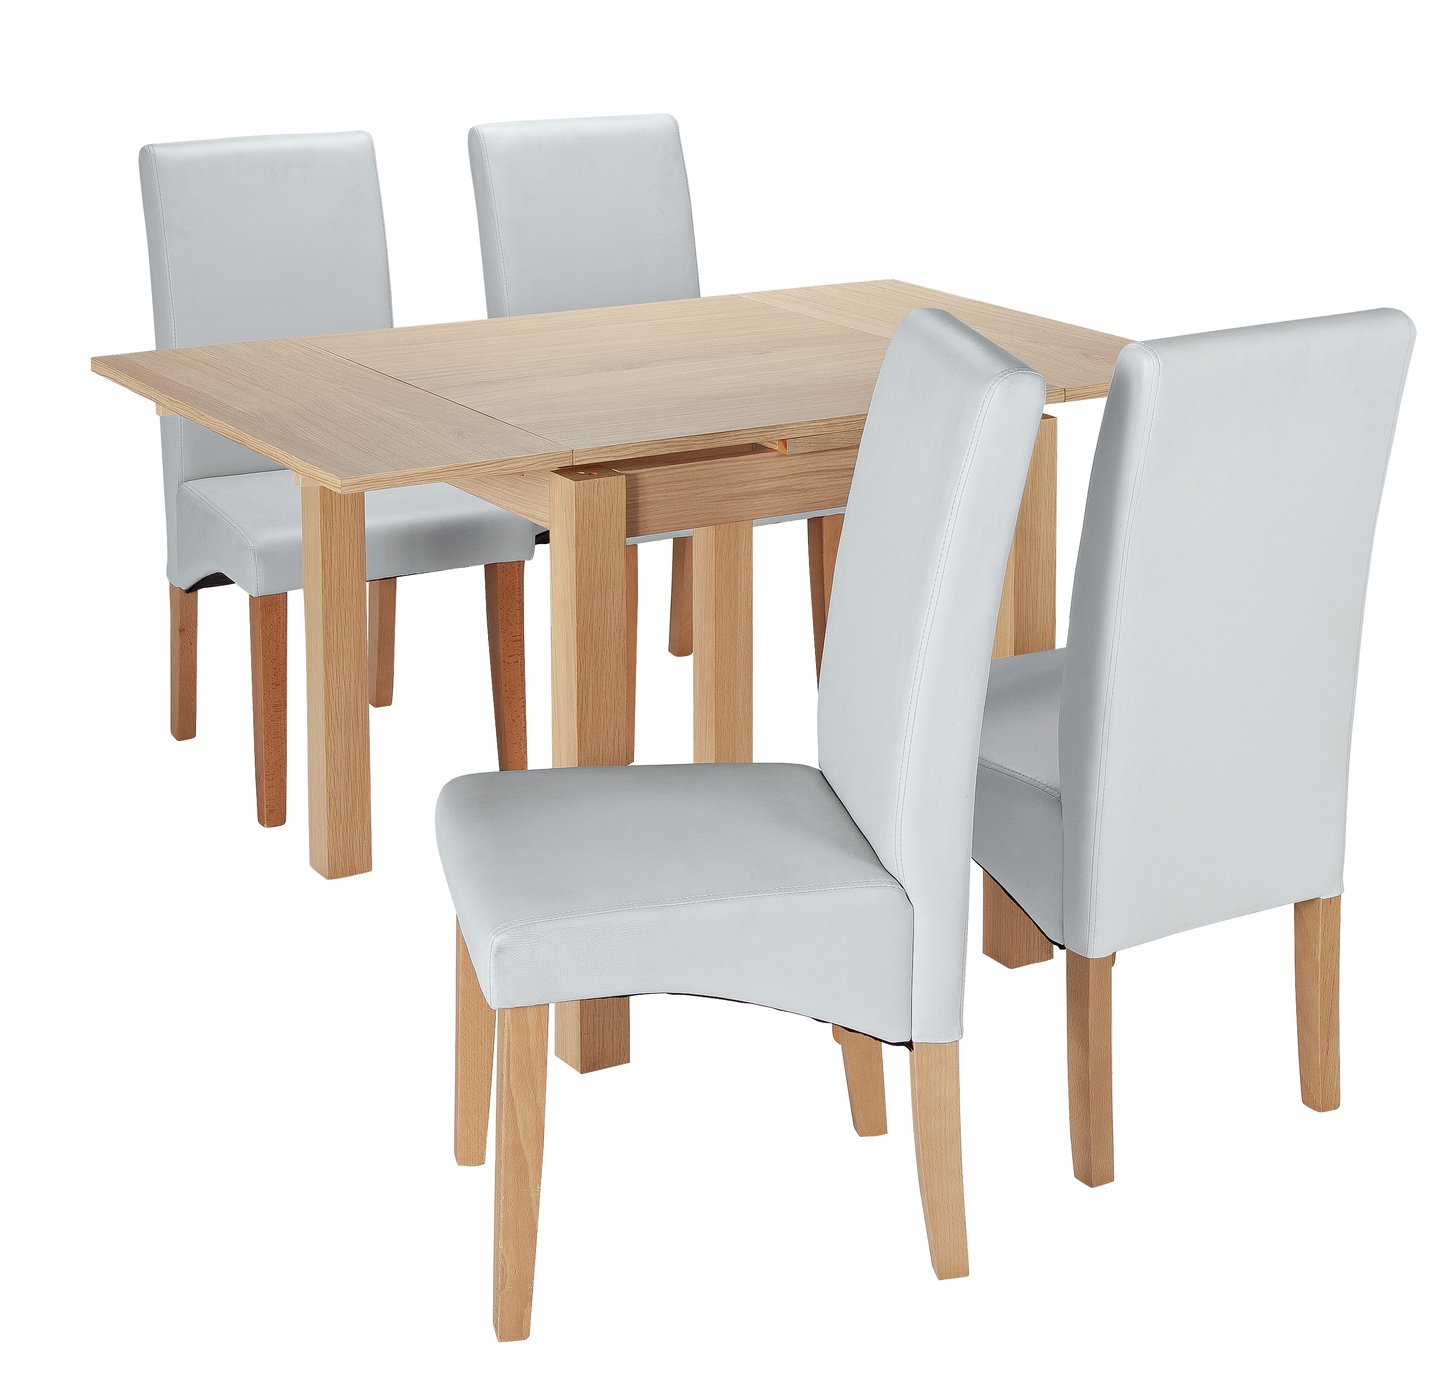 Argos Home Clifton Oak Extendable Table & 4 Chairs - Grey